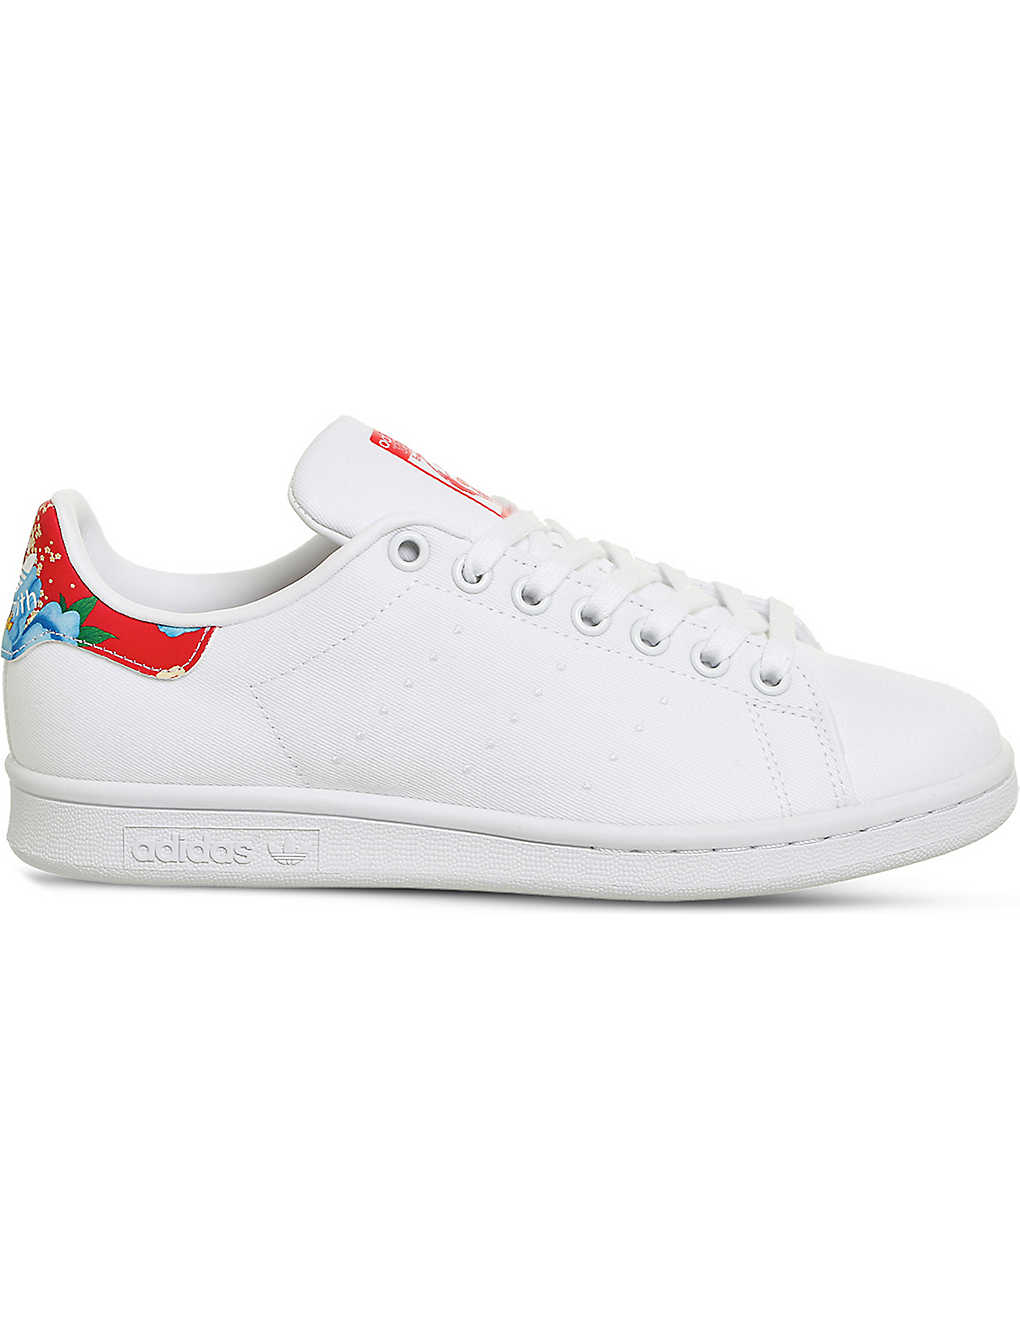 7a976ee3d90 ADIDAS - Stan Smith floral canvas trainers